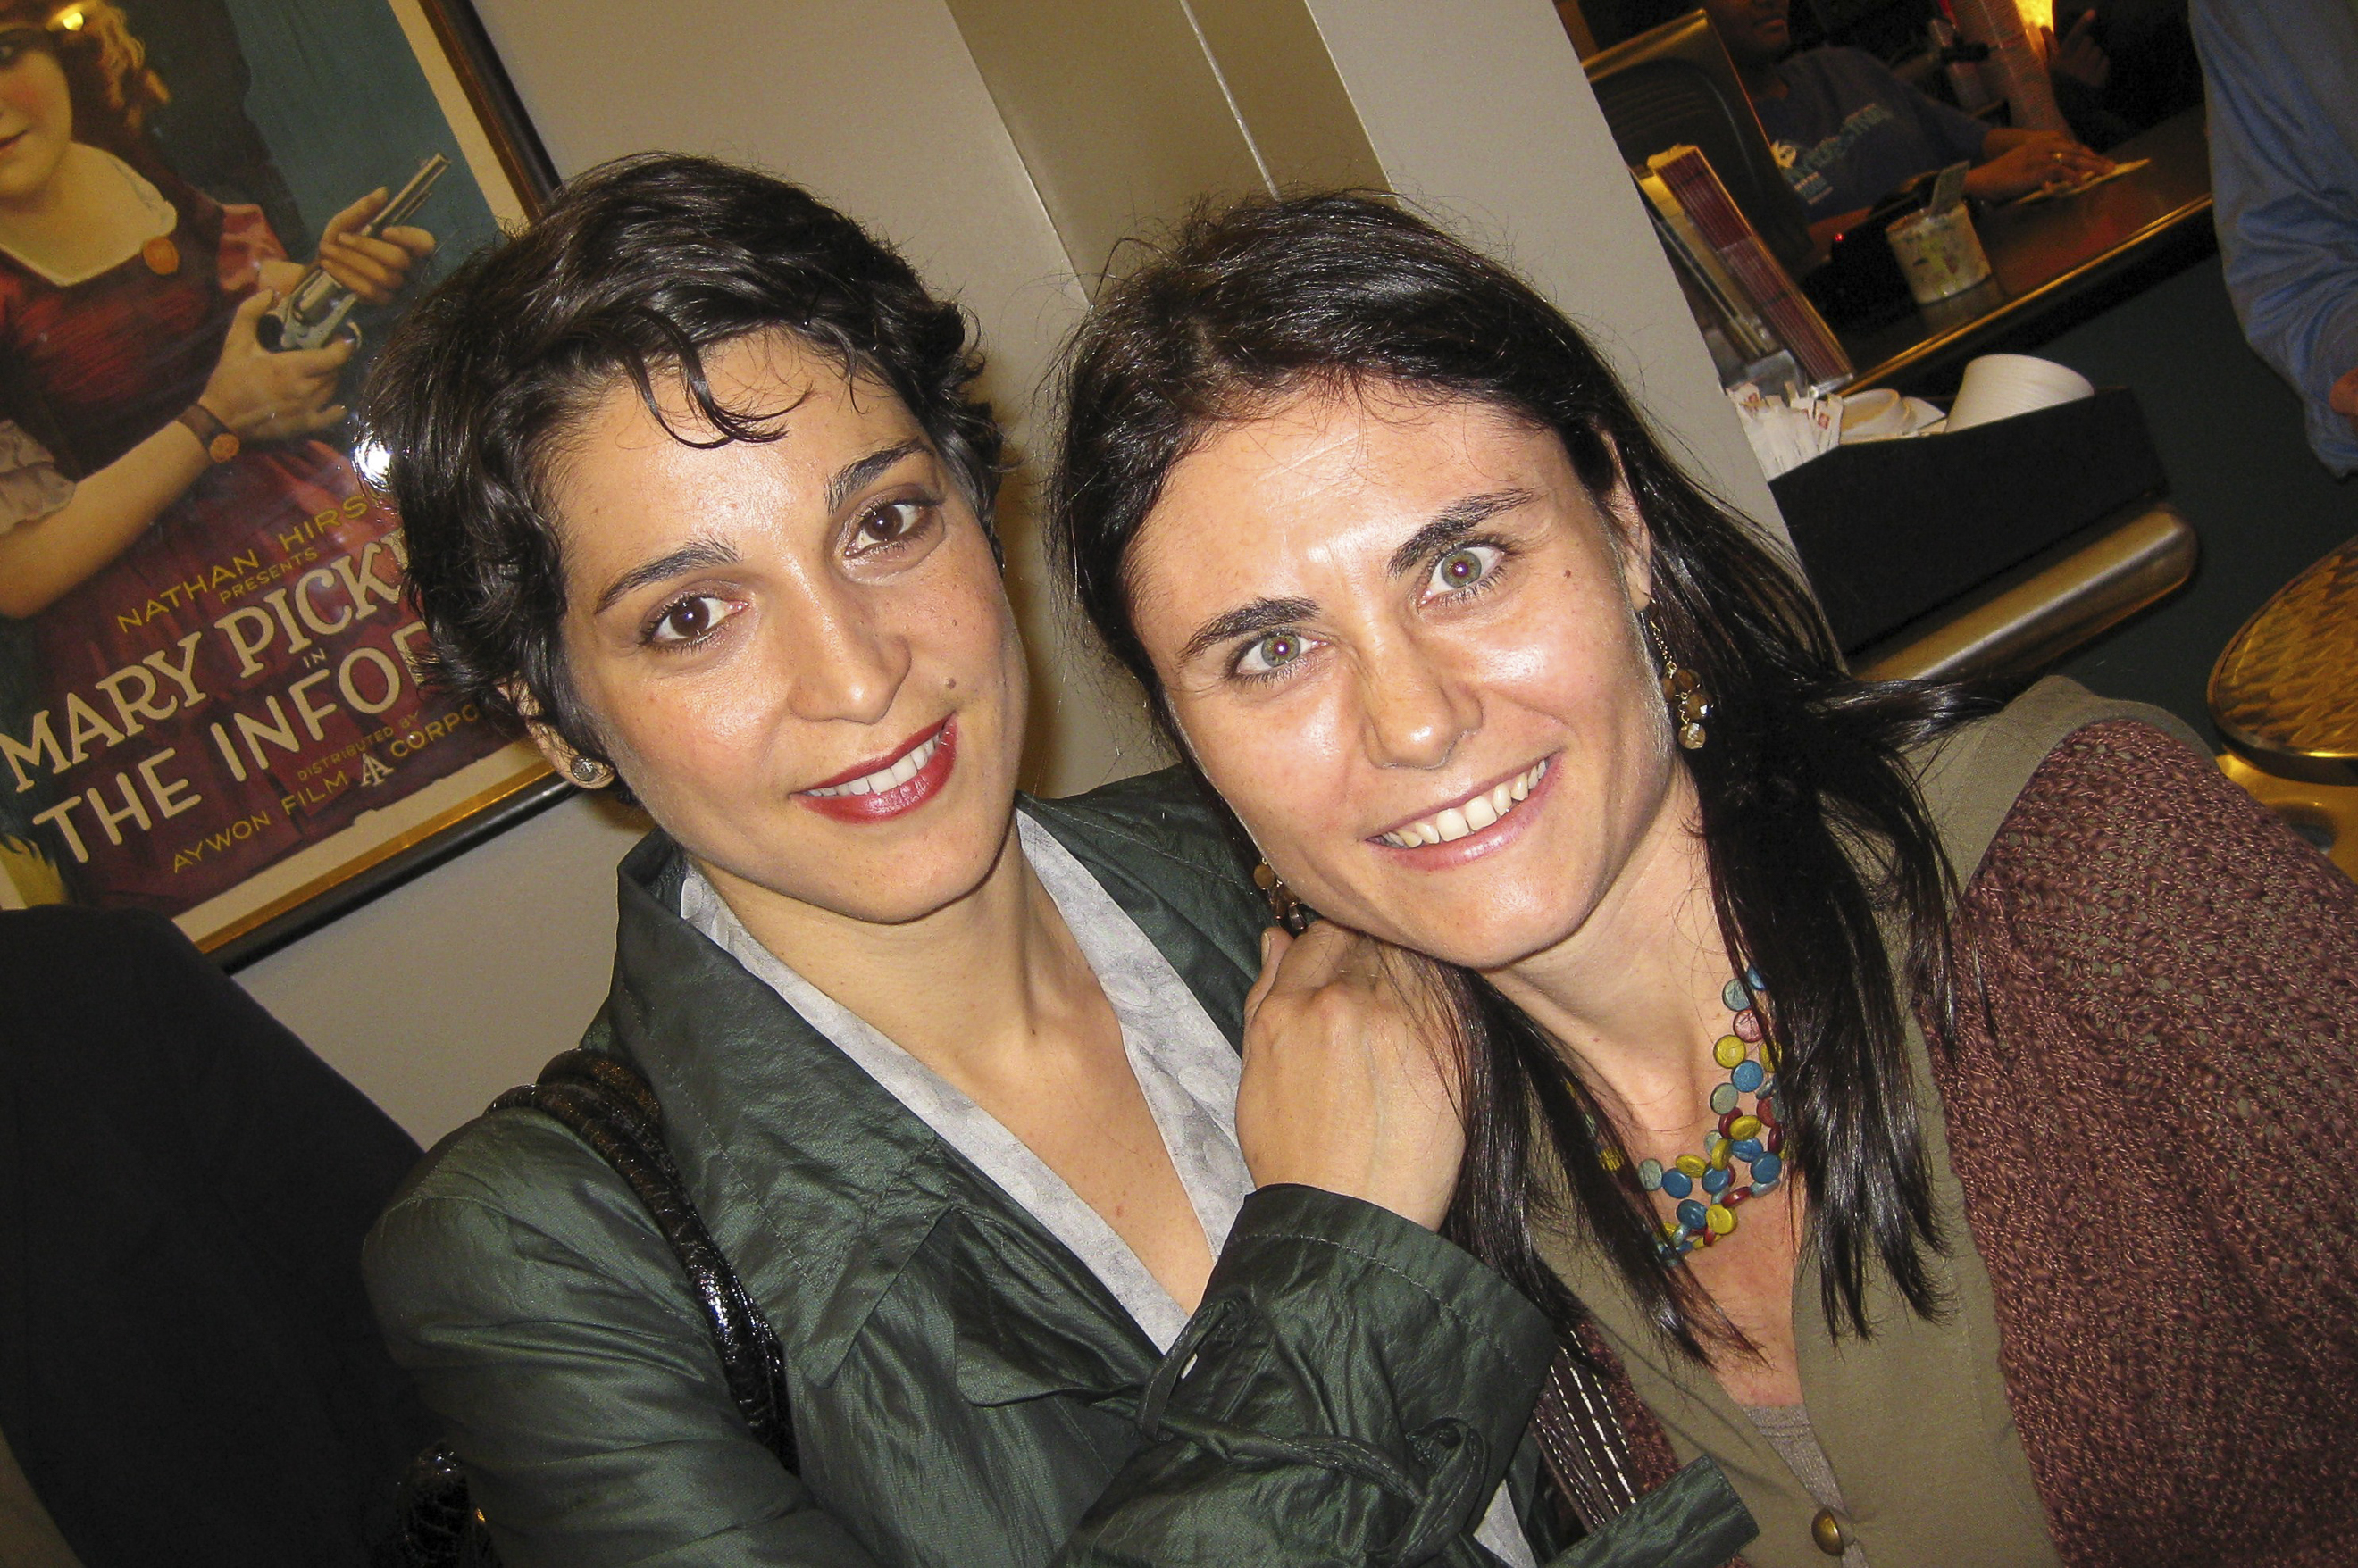 with Donatella Finocchiaro